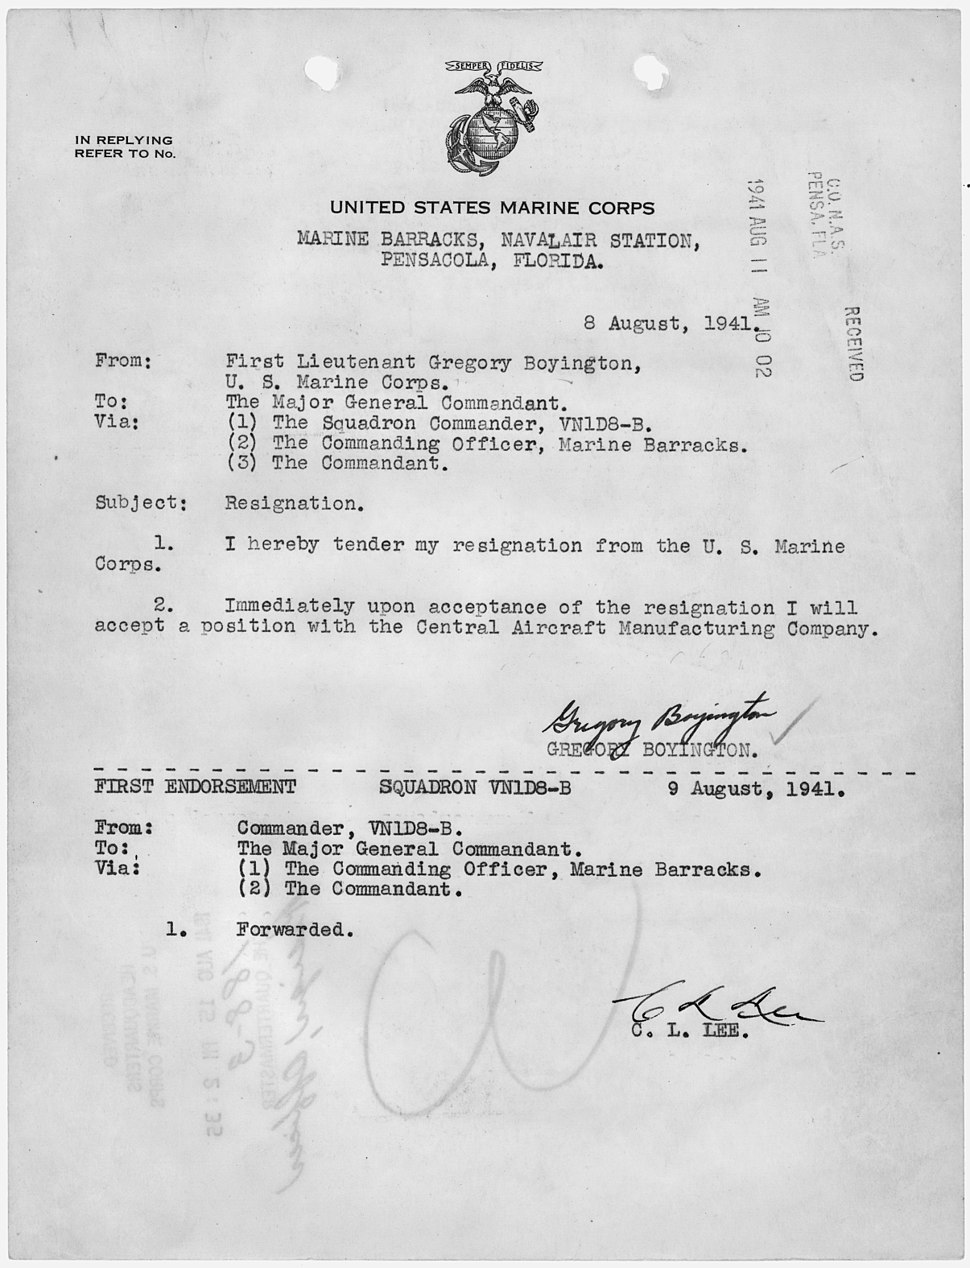 Letter of resignation from the U.S. Marine Corps, to accept a position with the Central Aircraft Manufacturing... - NARA - 299719